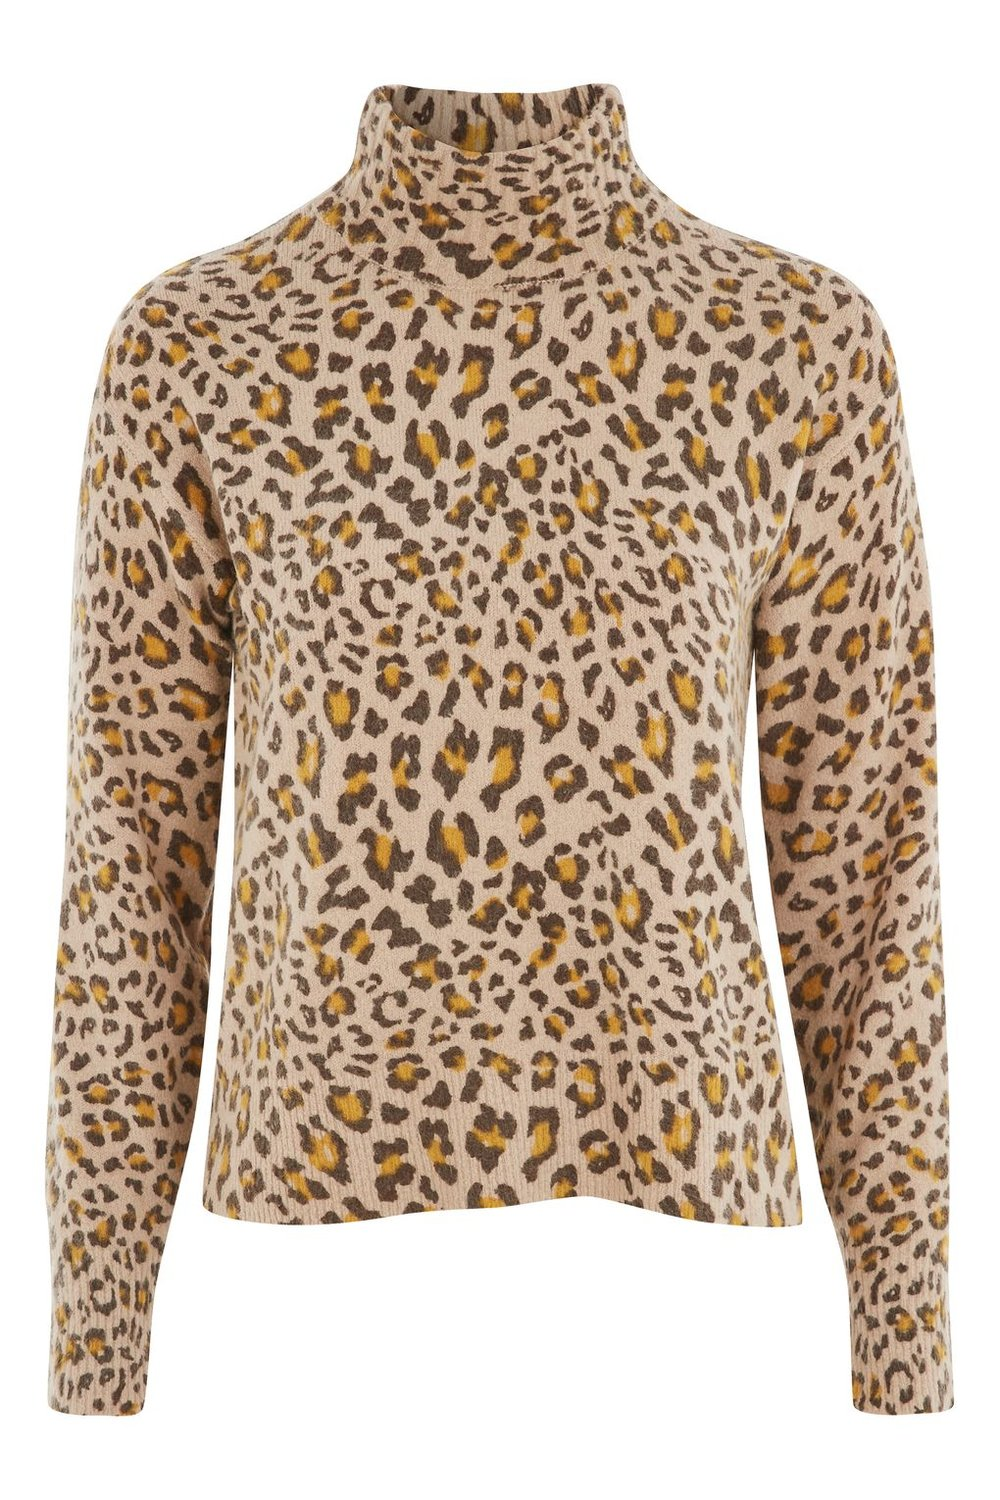 TOPSHOP LOFTY ANIMAL PRINT FUNNEL NECK JUMPER